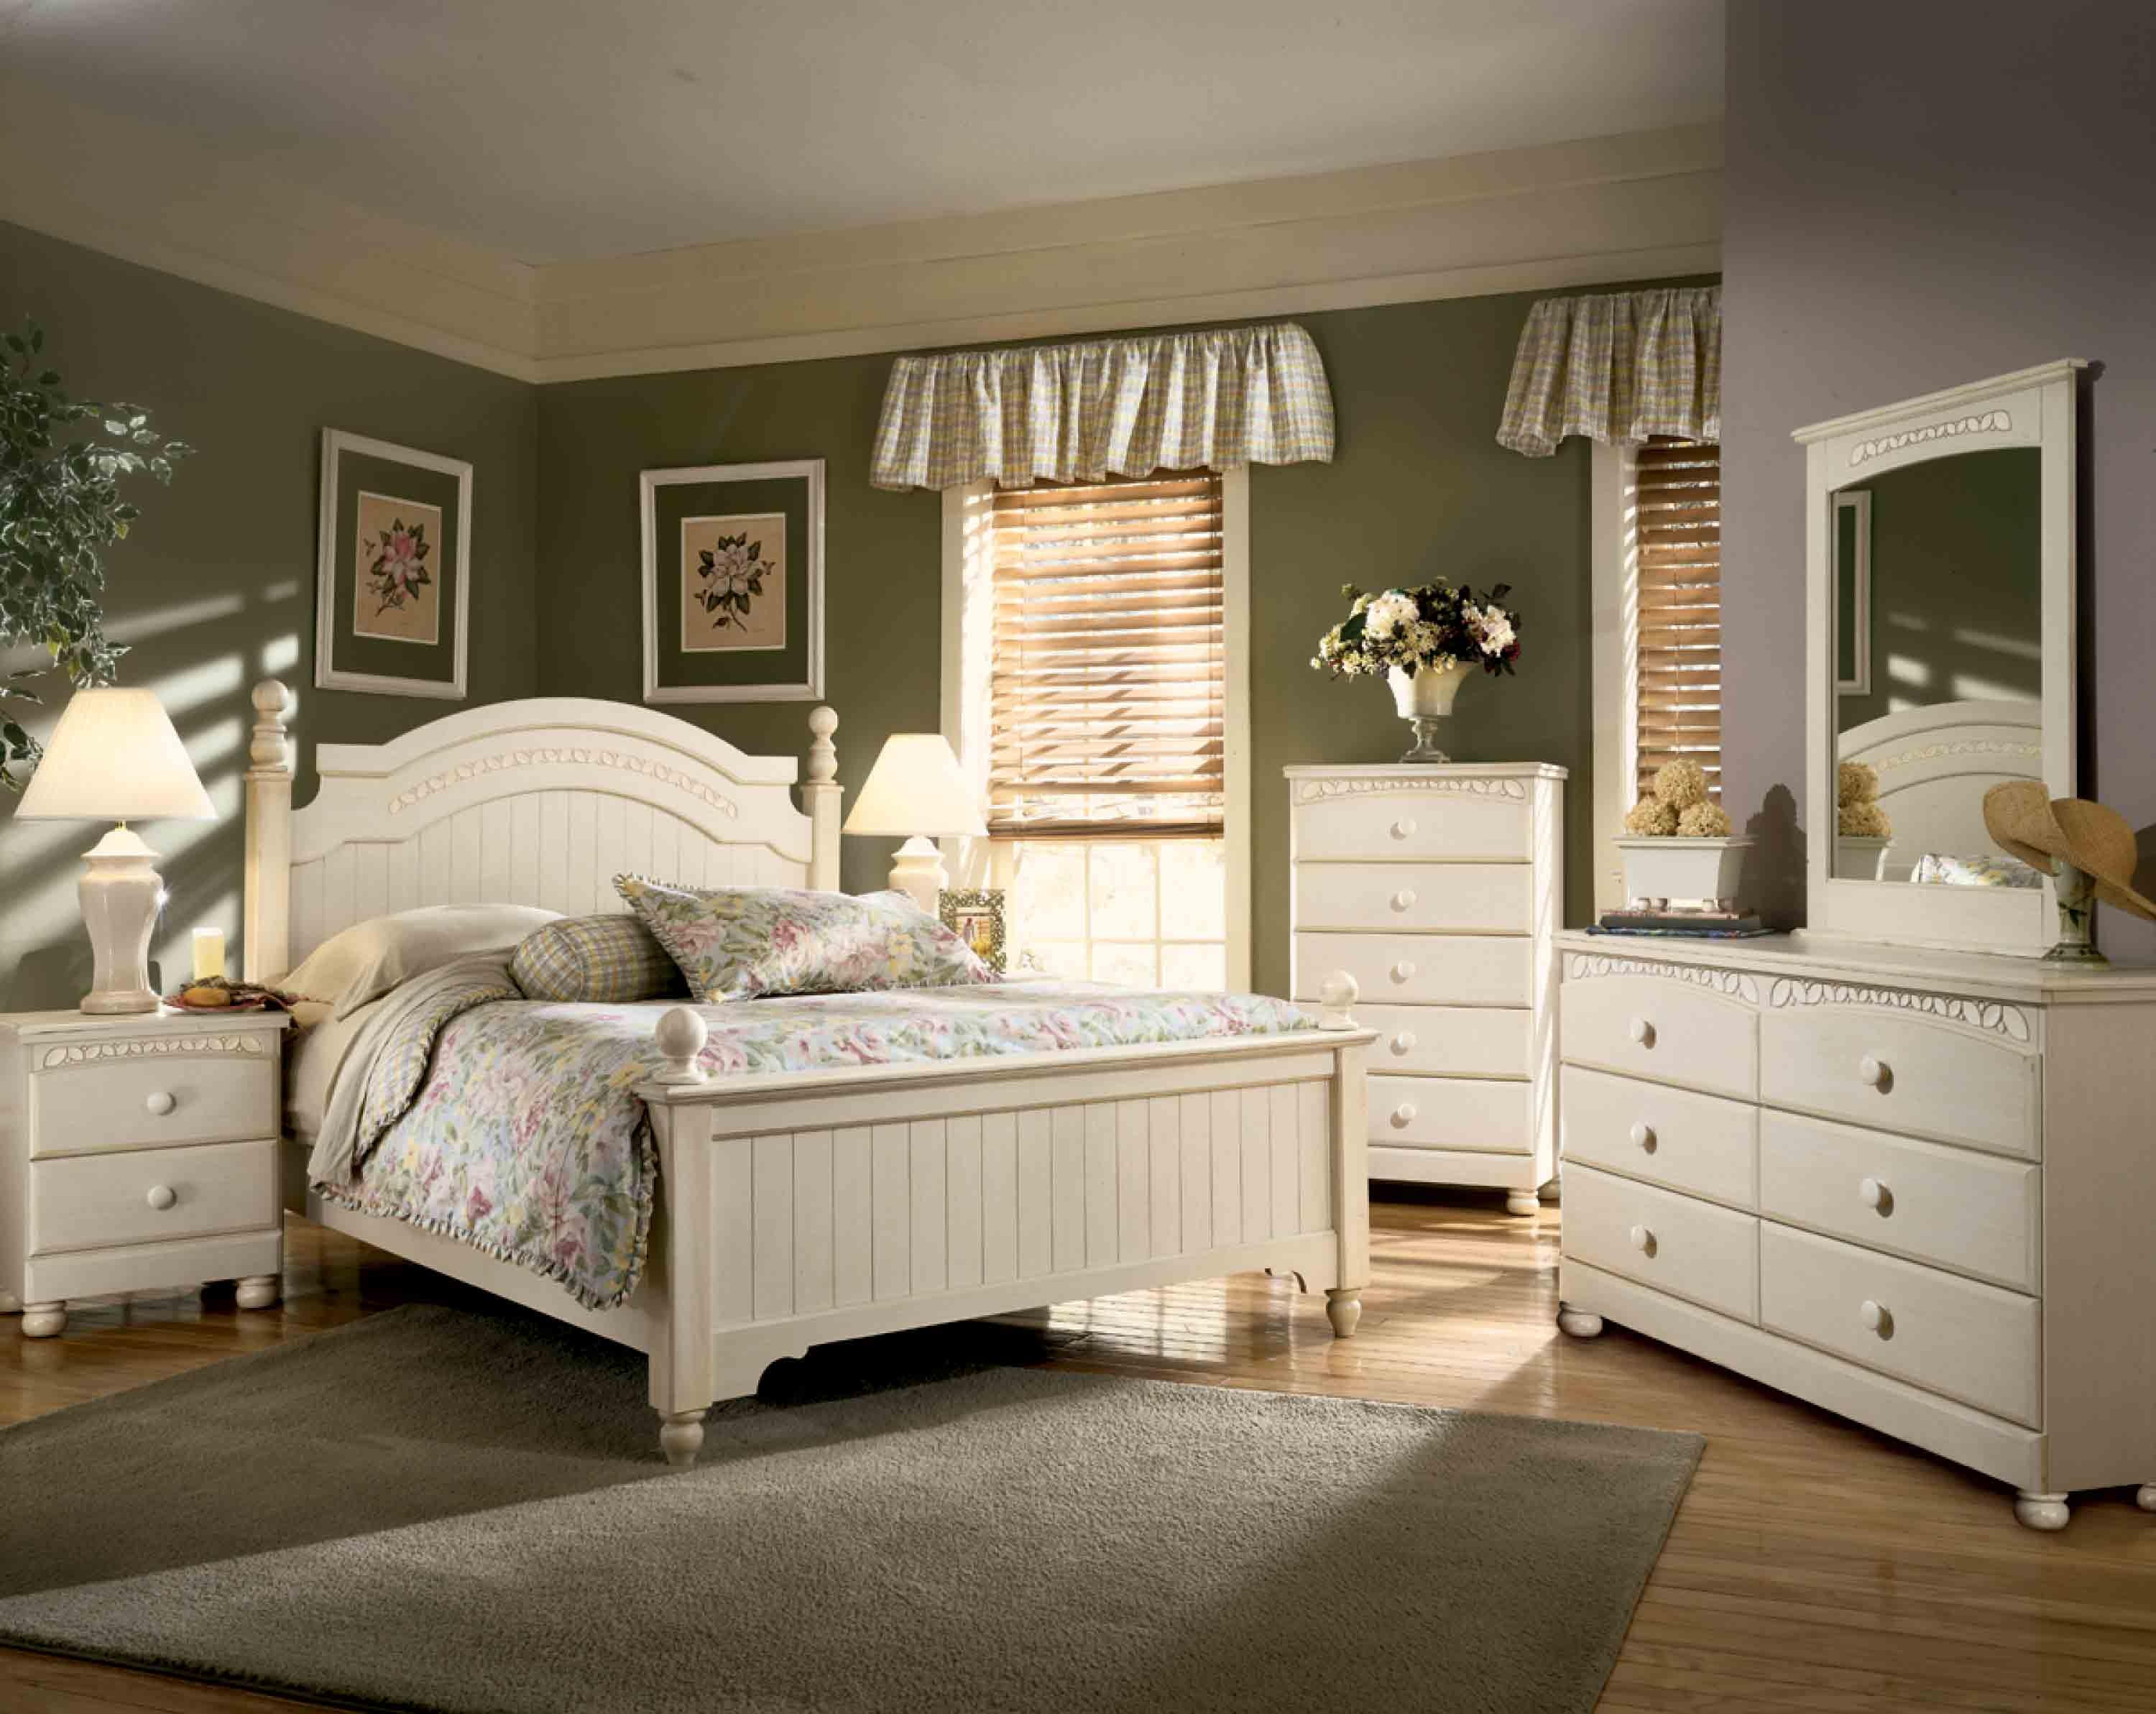 Furniture in brooklyn at for Sample bedroom designs